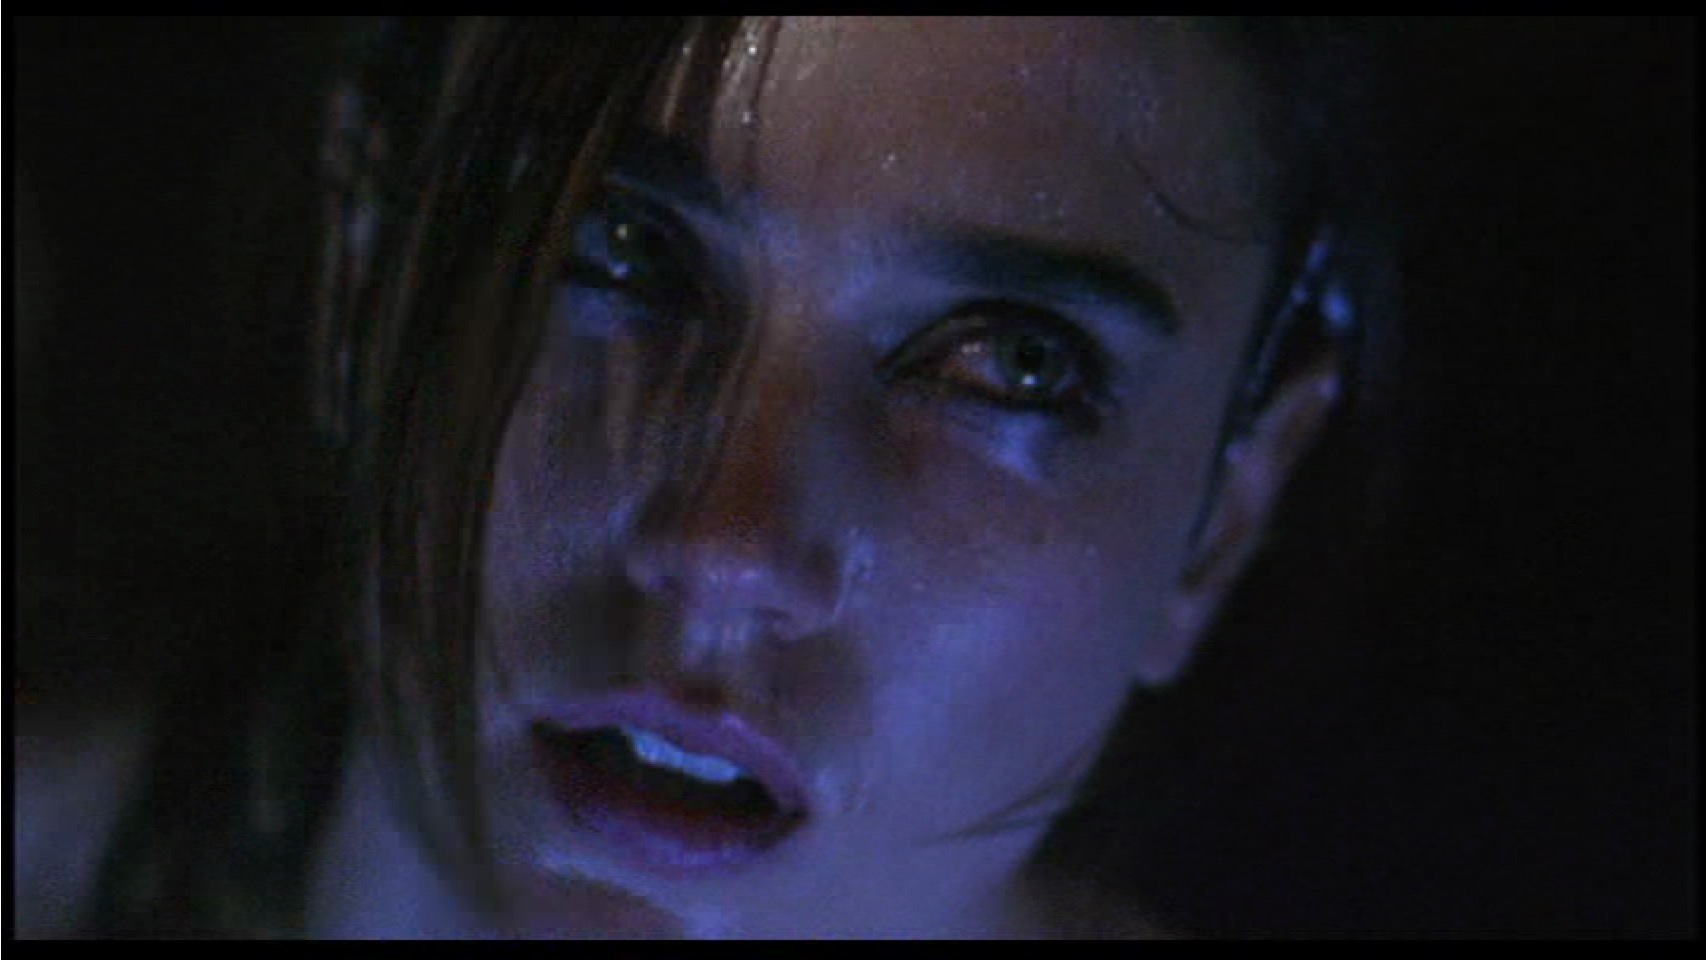 Requiem for a dream sex scene picture 47